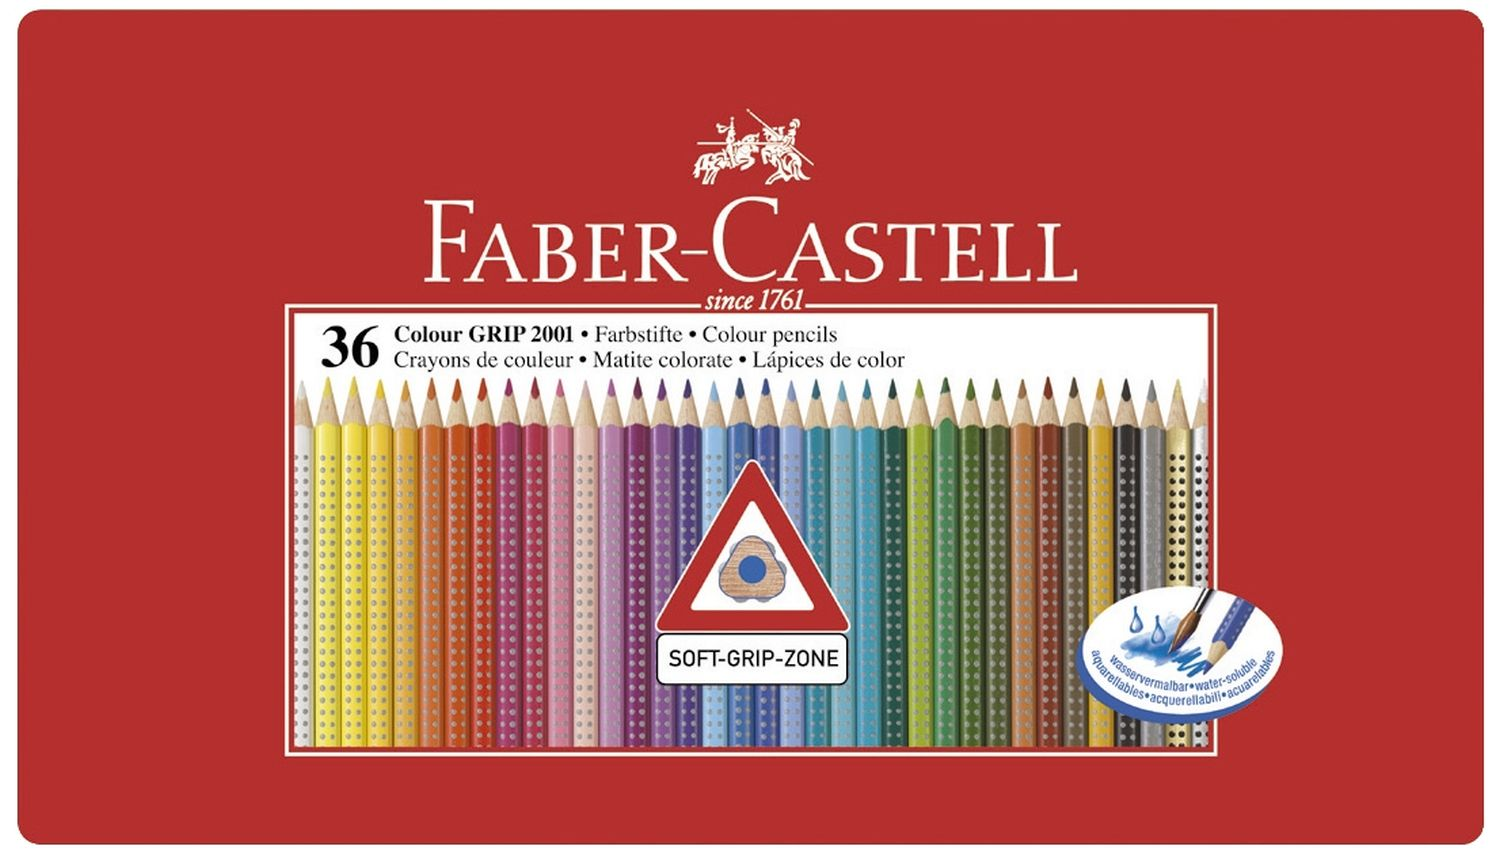 Faber-Castell Colour Grip Buntstifte 36 Farben im Metalletui